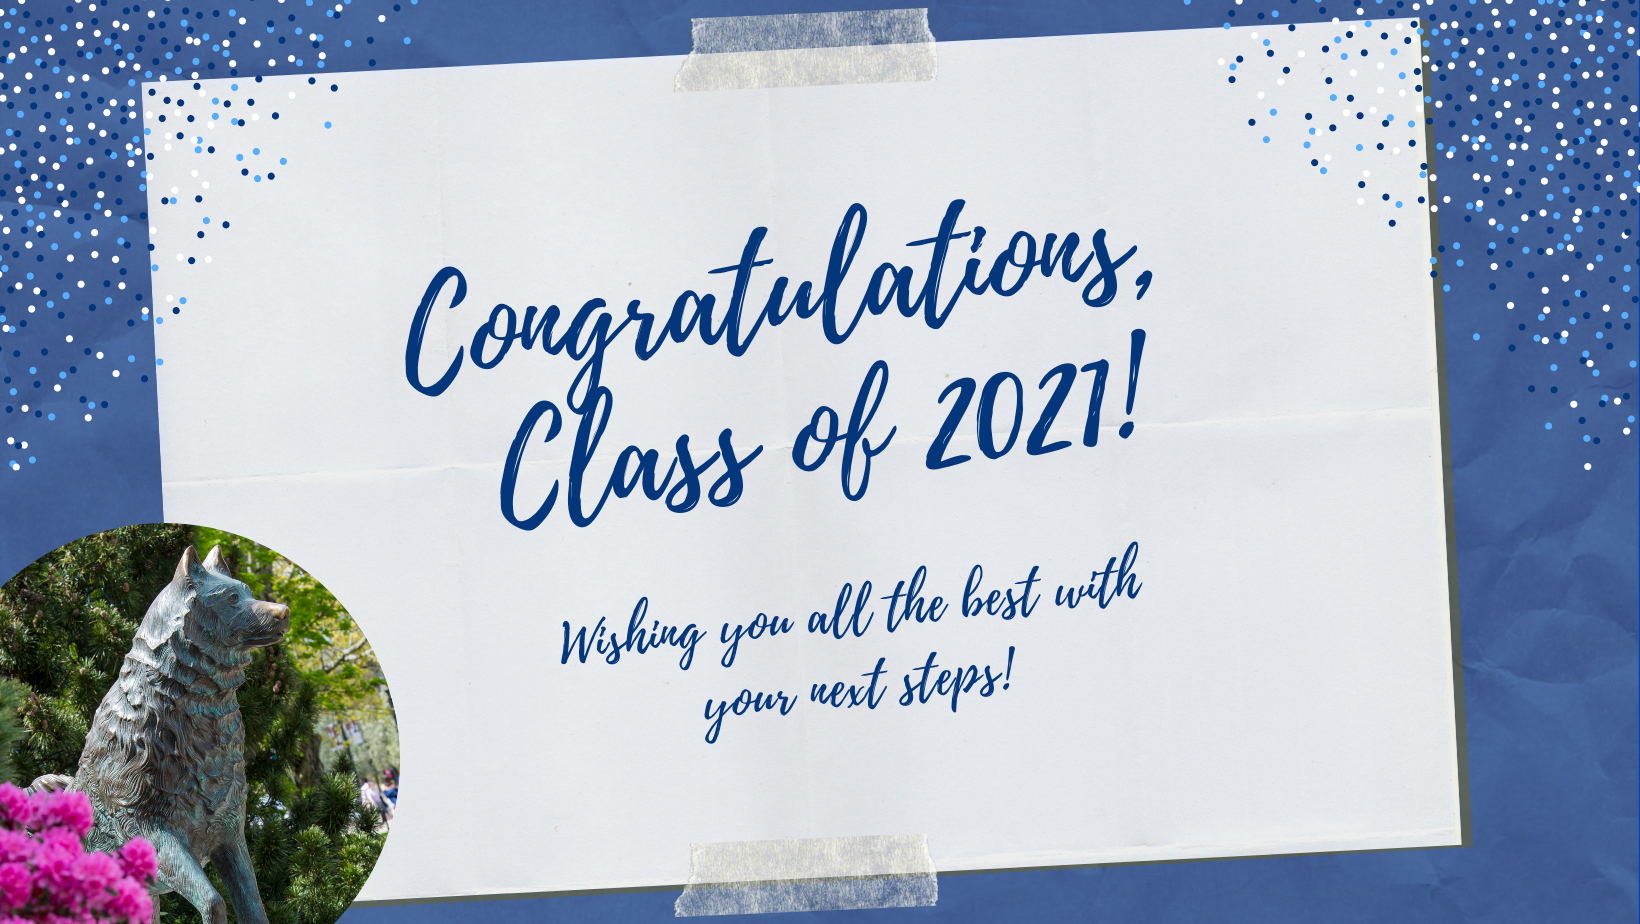 congratulations, Class of 2021 message with Jonathan statue in the corner